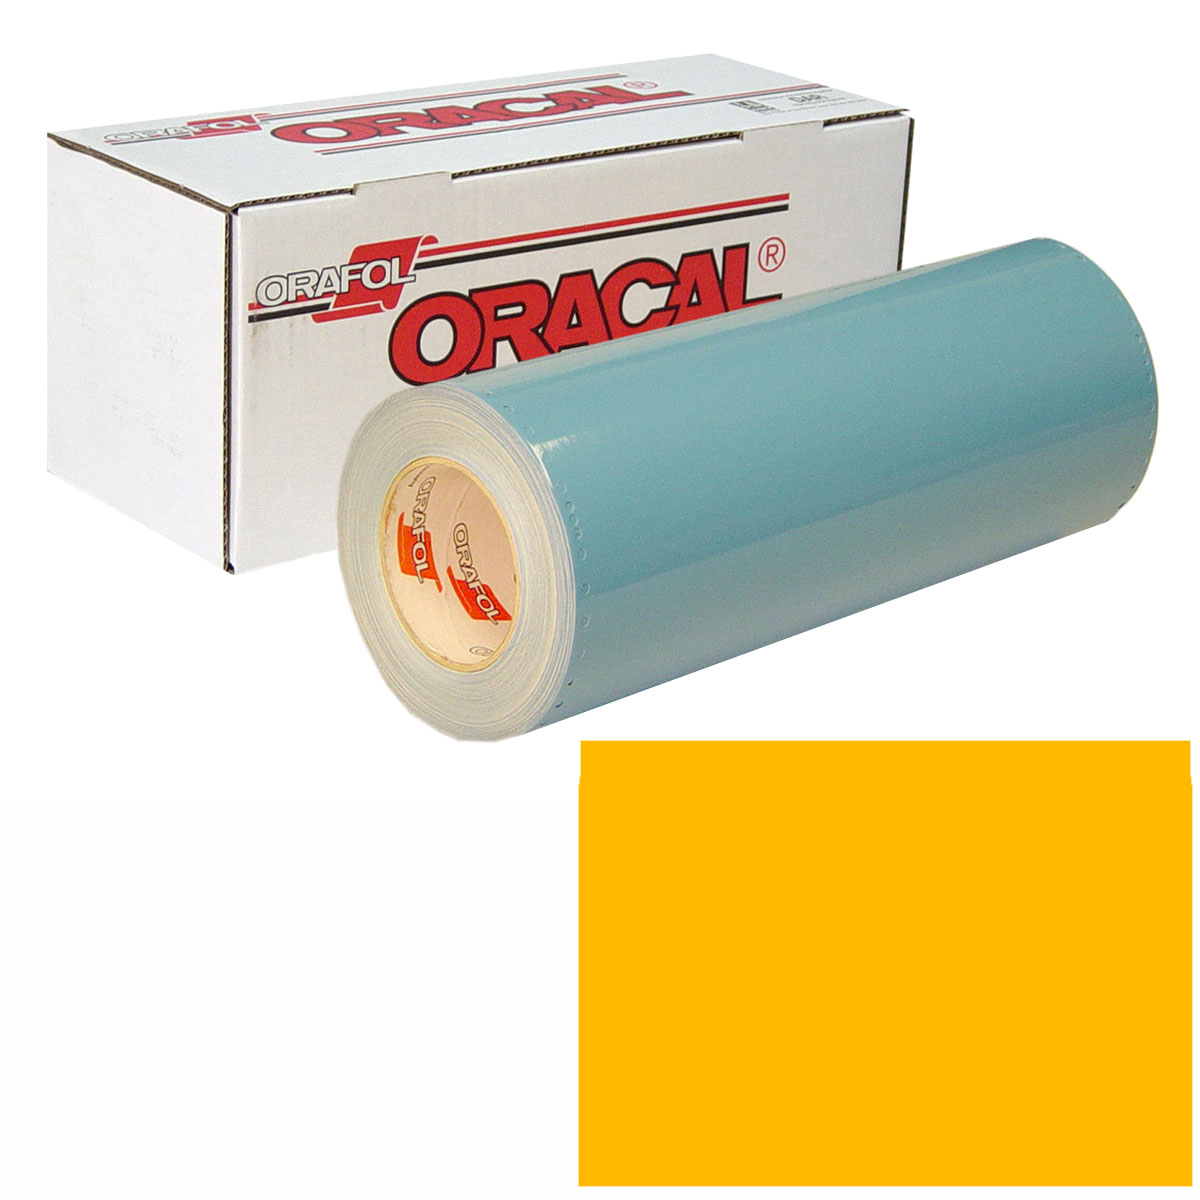 ORACAL 751 15In X 50Yd 020 Golden Yellow